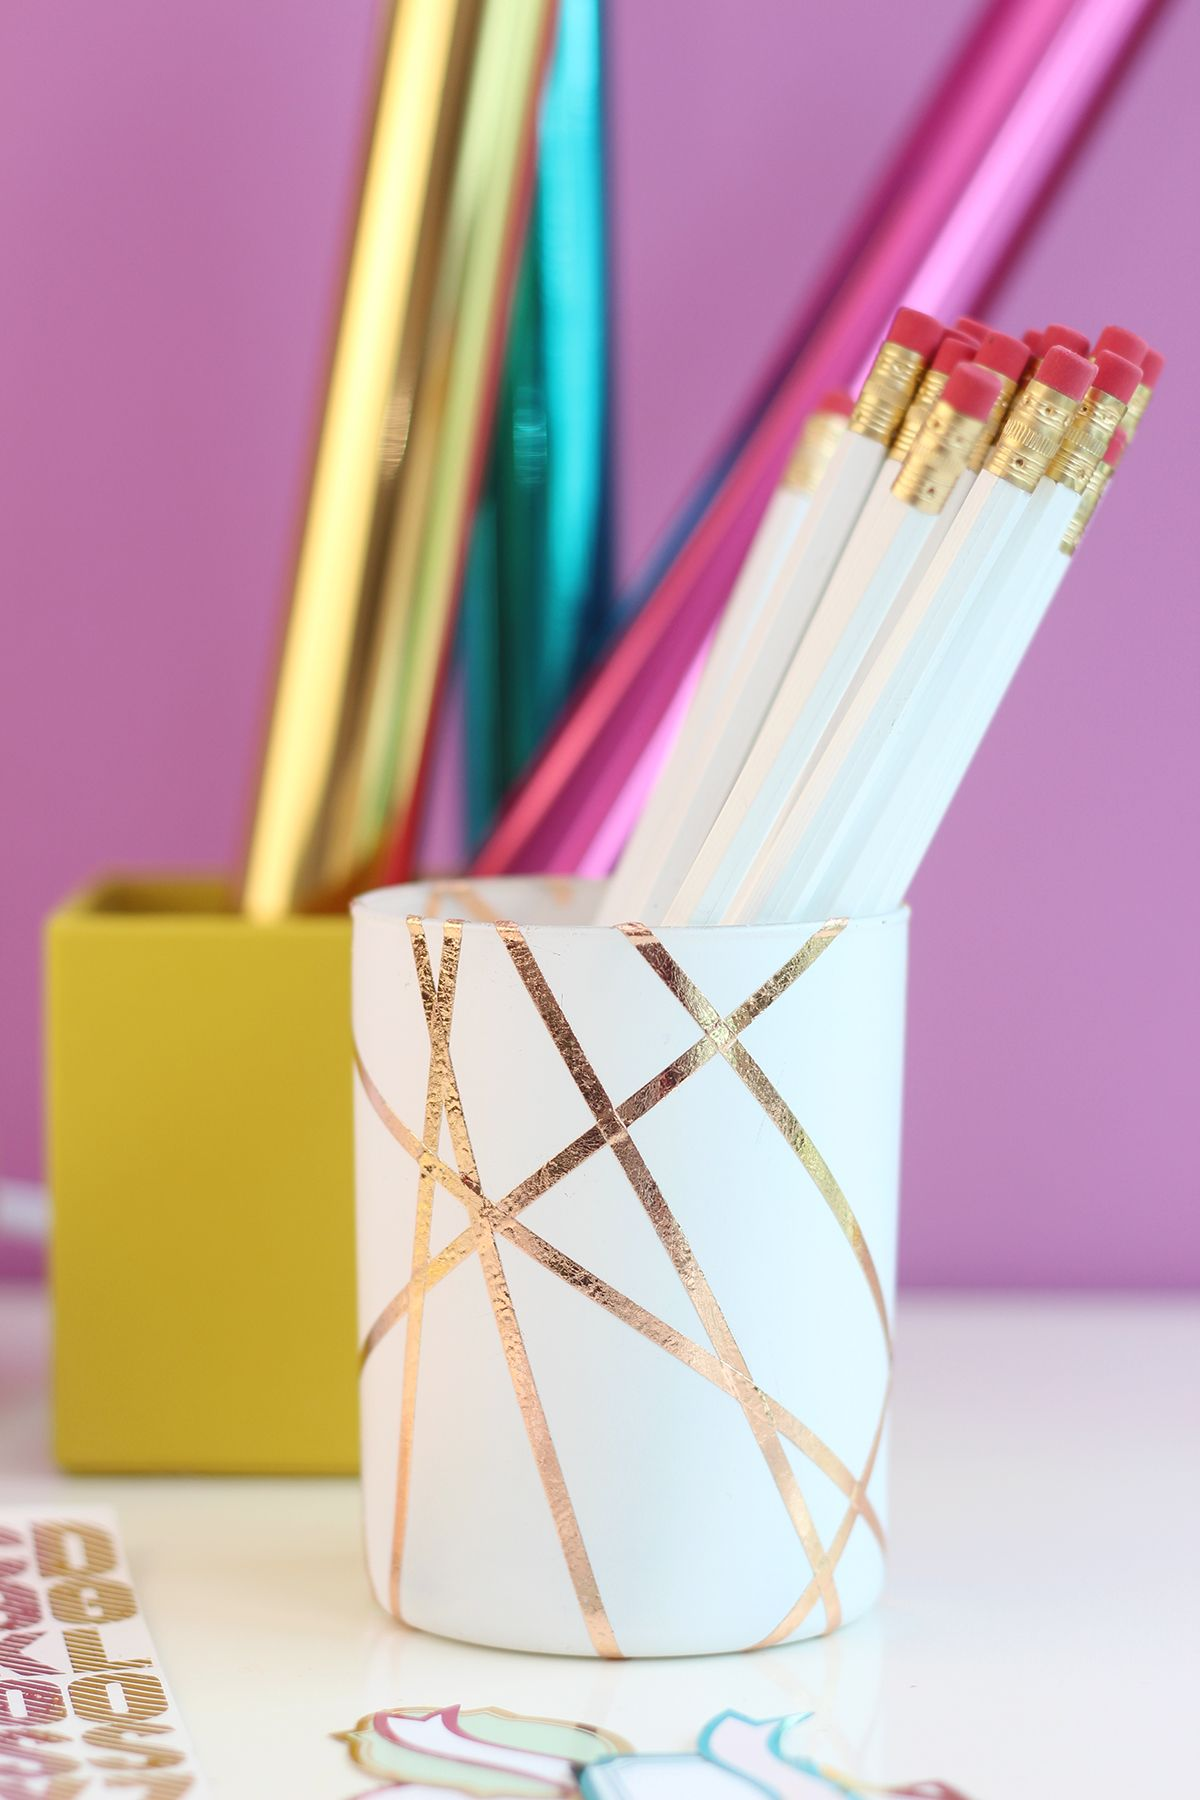 DIY Gold Pencil Holders